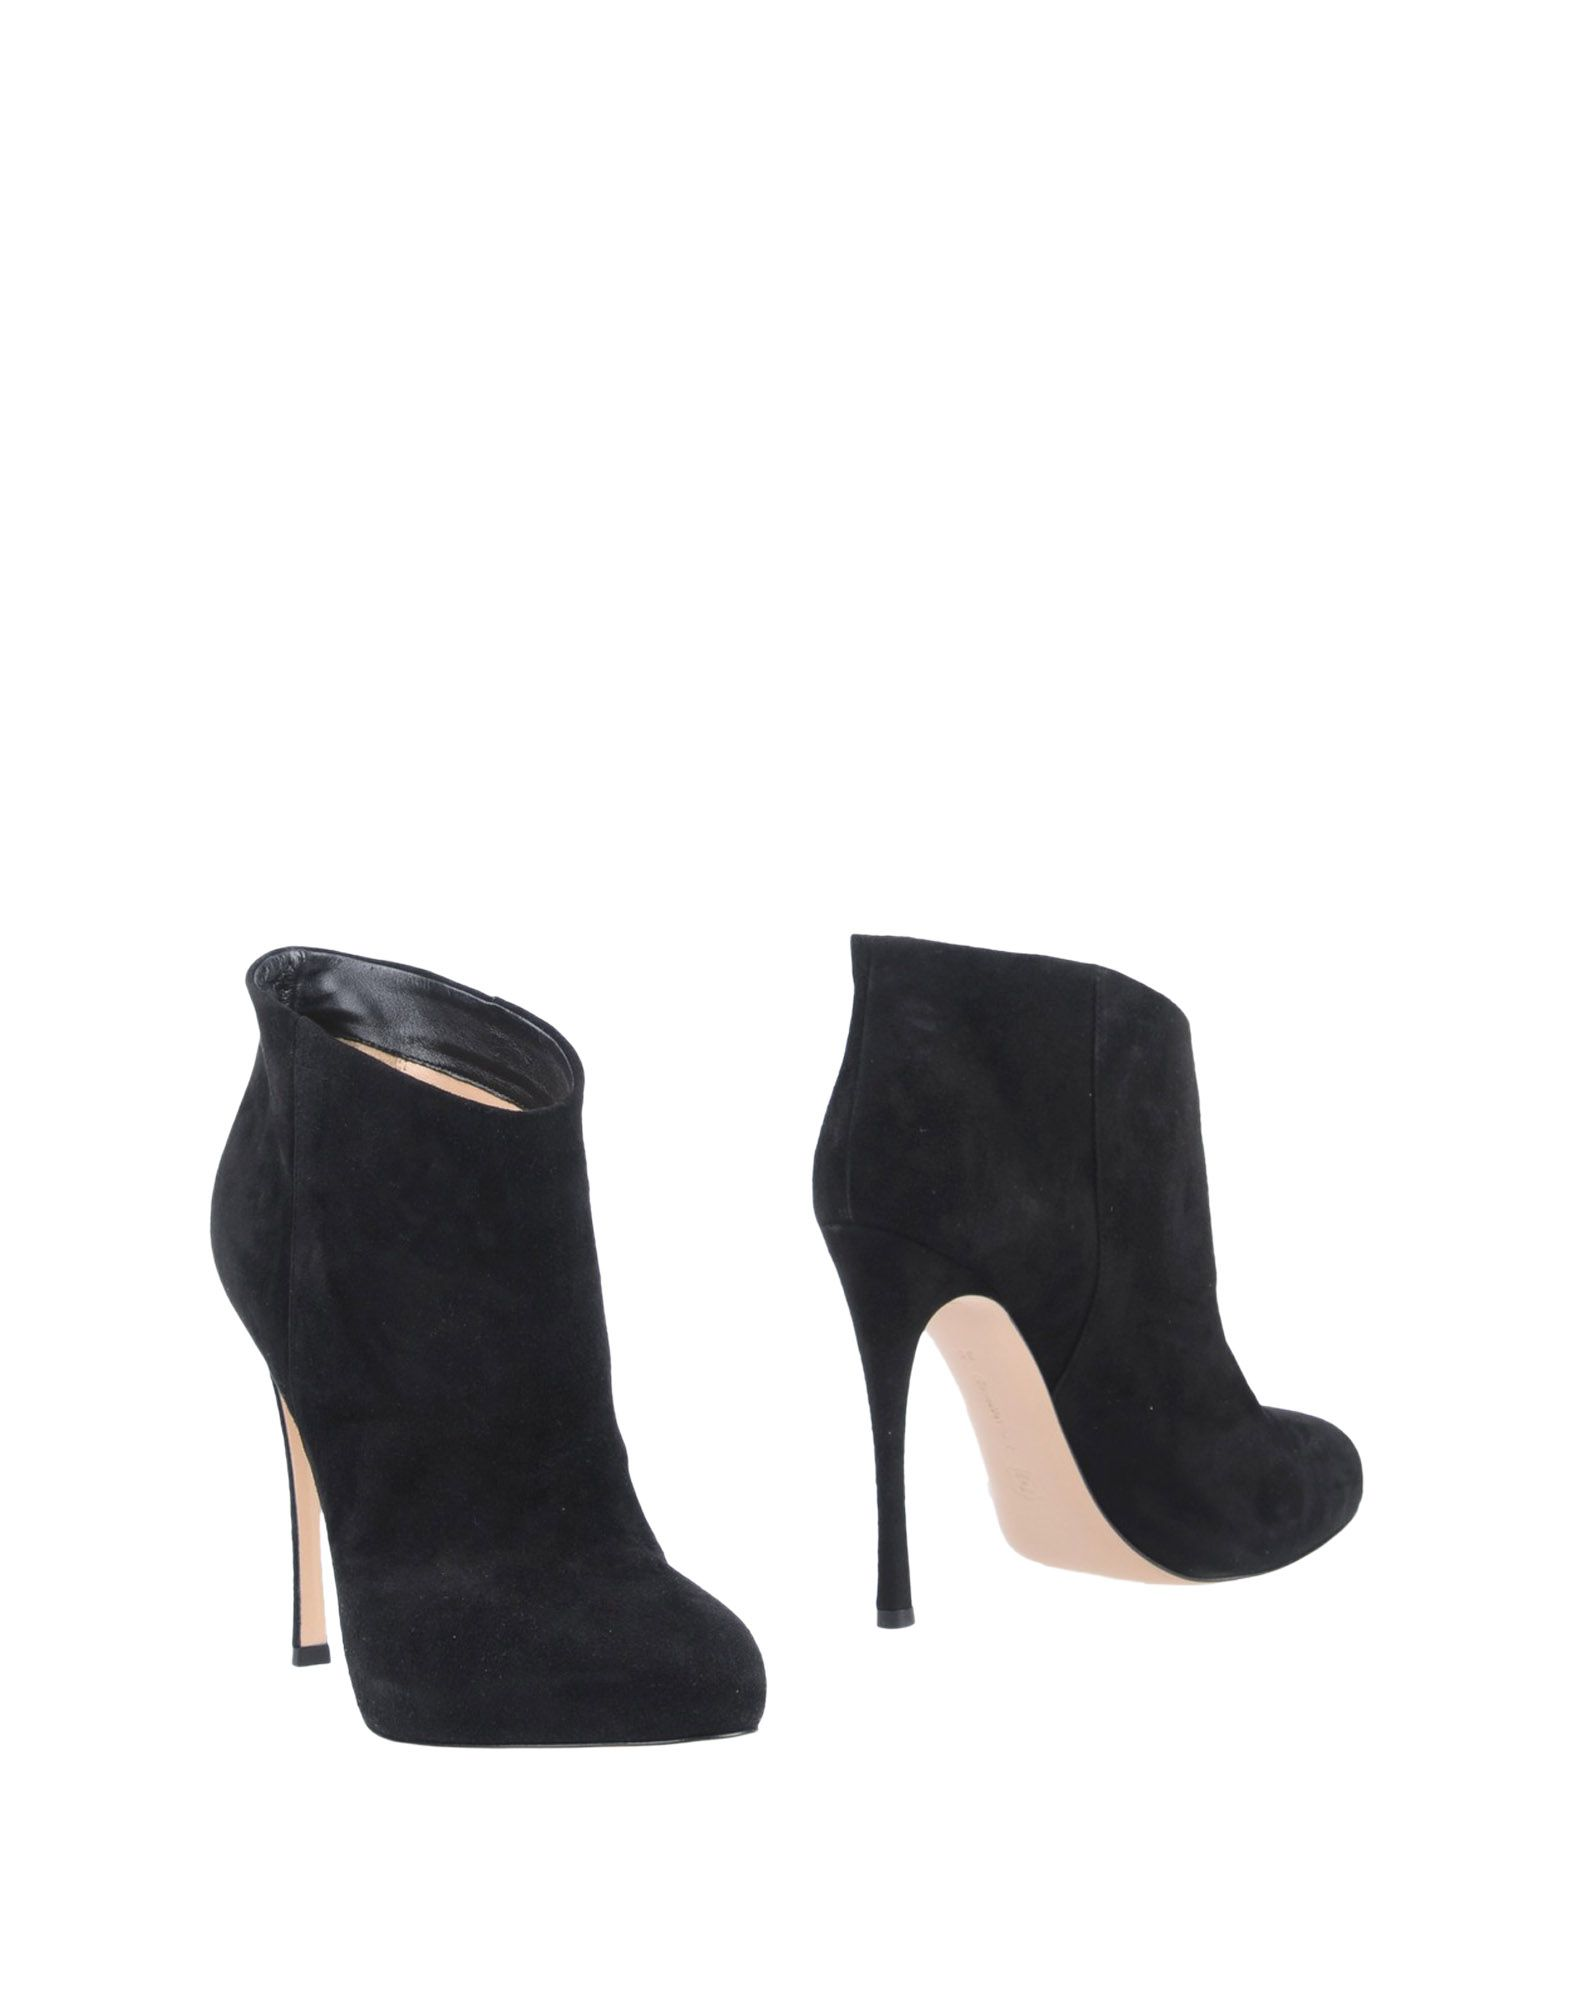 Gianvito Rossi Ankle Boot - Women online Gianvito Rossi Ankle Boots online Women on  Australia - 11315909NB 4d8693